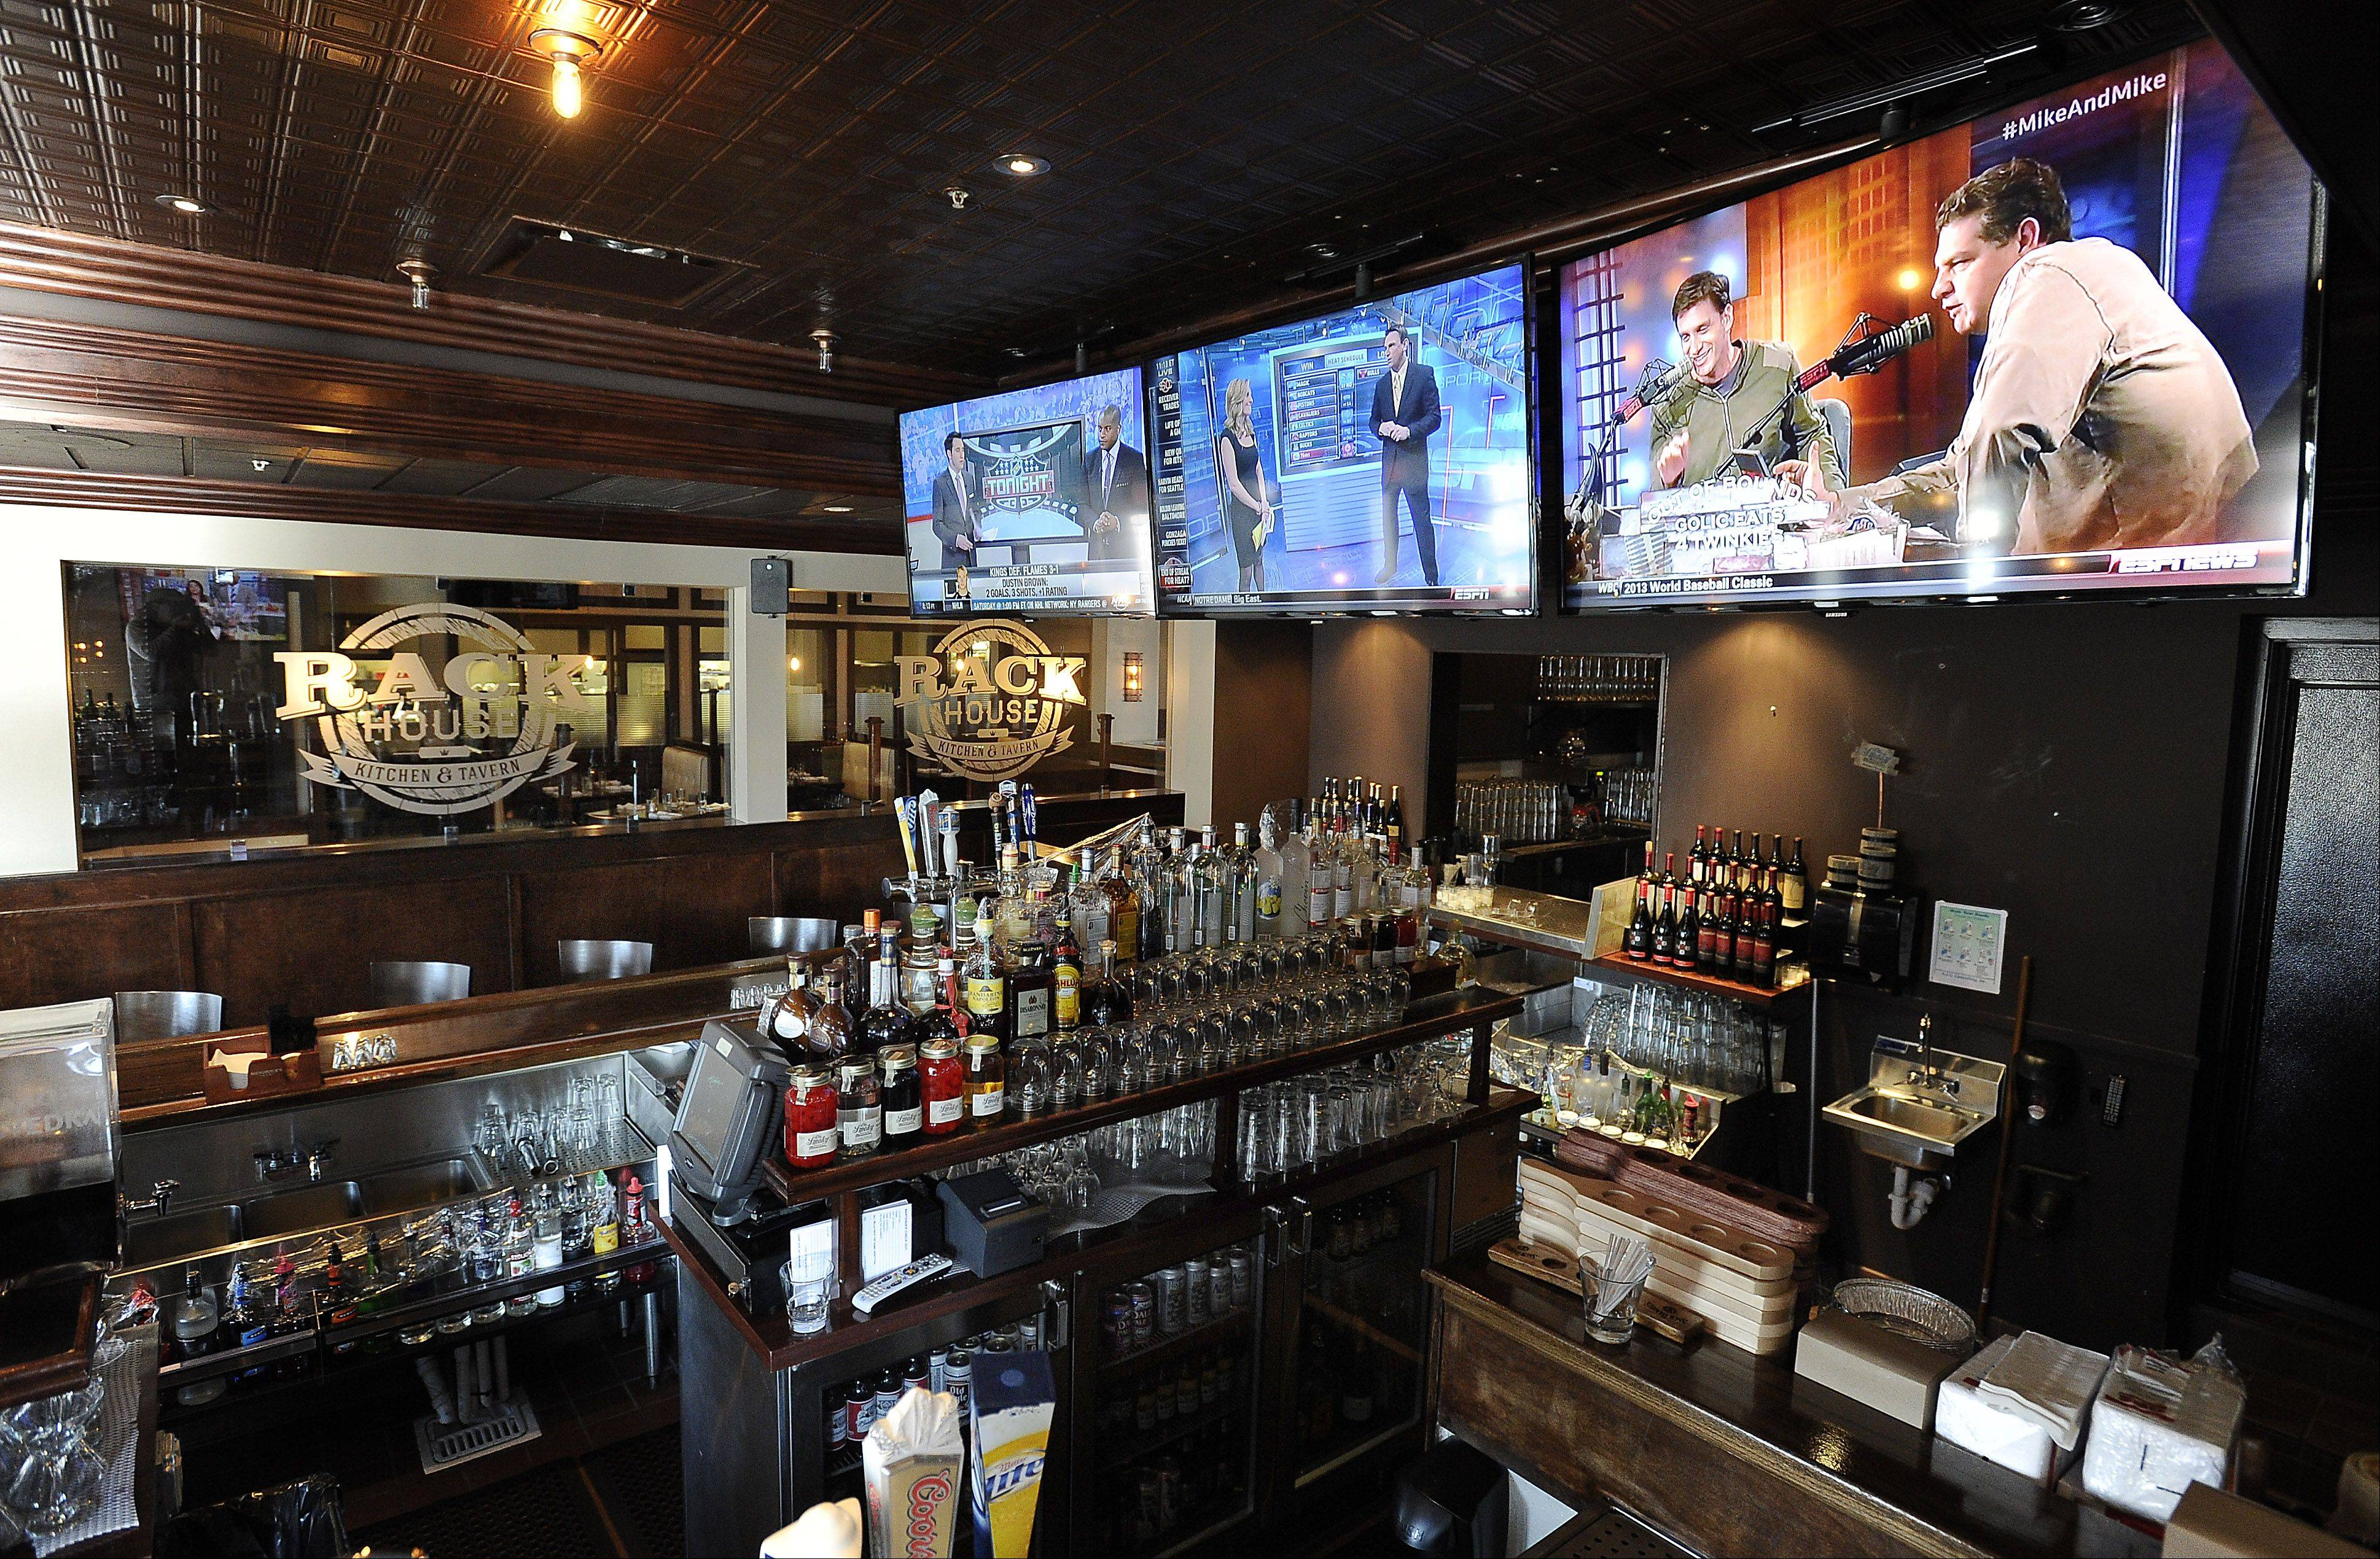 Big screen monitors are on display at the bar.